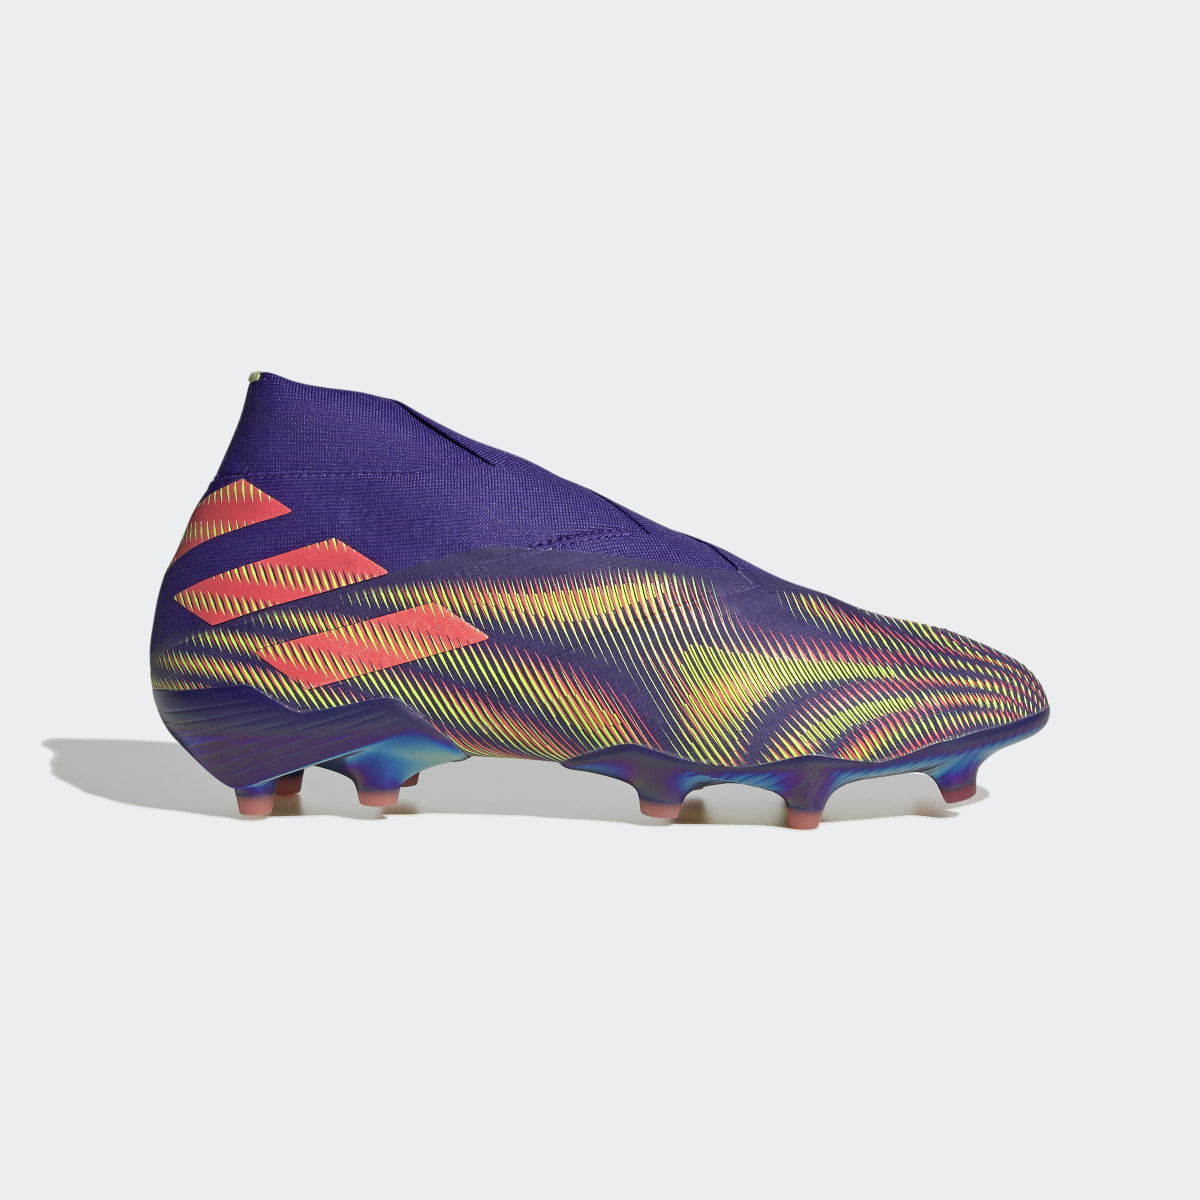 Nemeziz+ Firm Ground Cleats